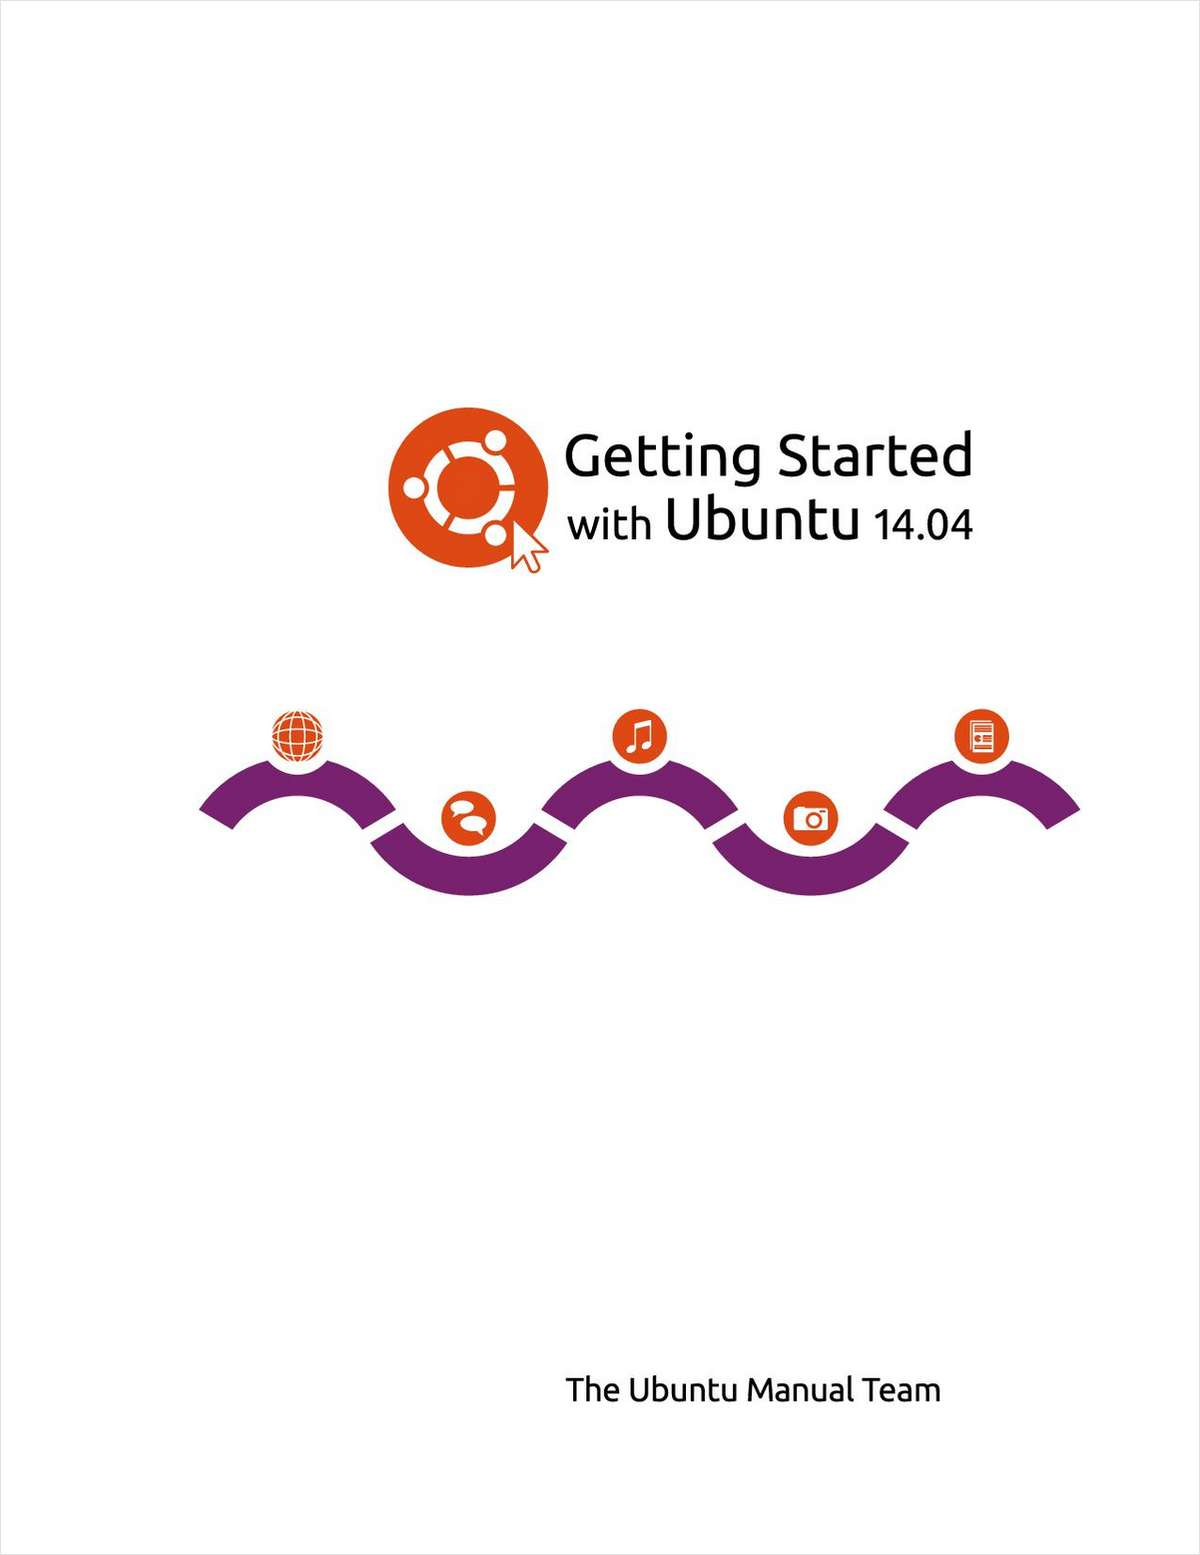 Getting Started with Ubuntu 14.04